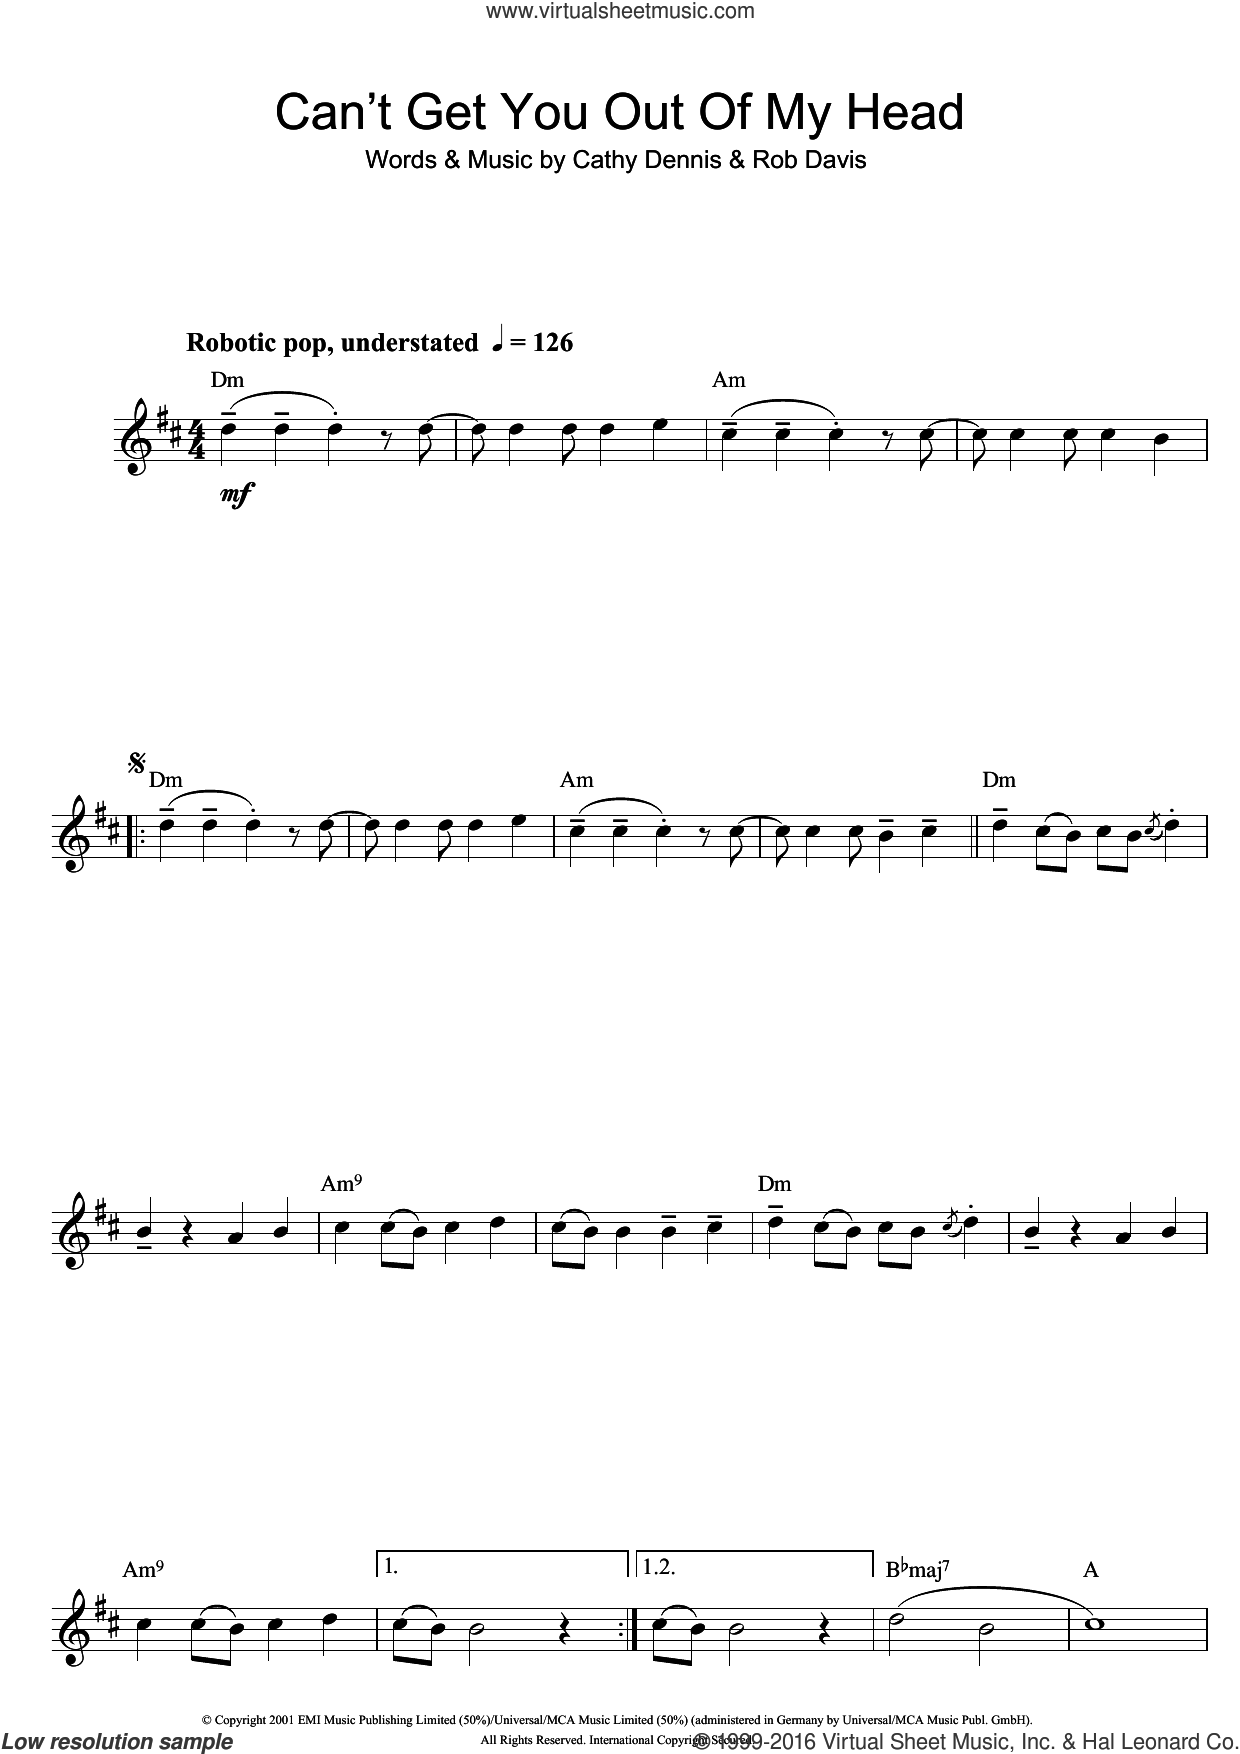 Can't Get You Out Of My Head sheet music for saxophone solo by Rob Davis, Kylie Minogue and Cathy Dennis. Score Image Preview.